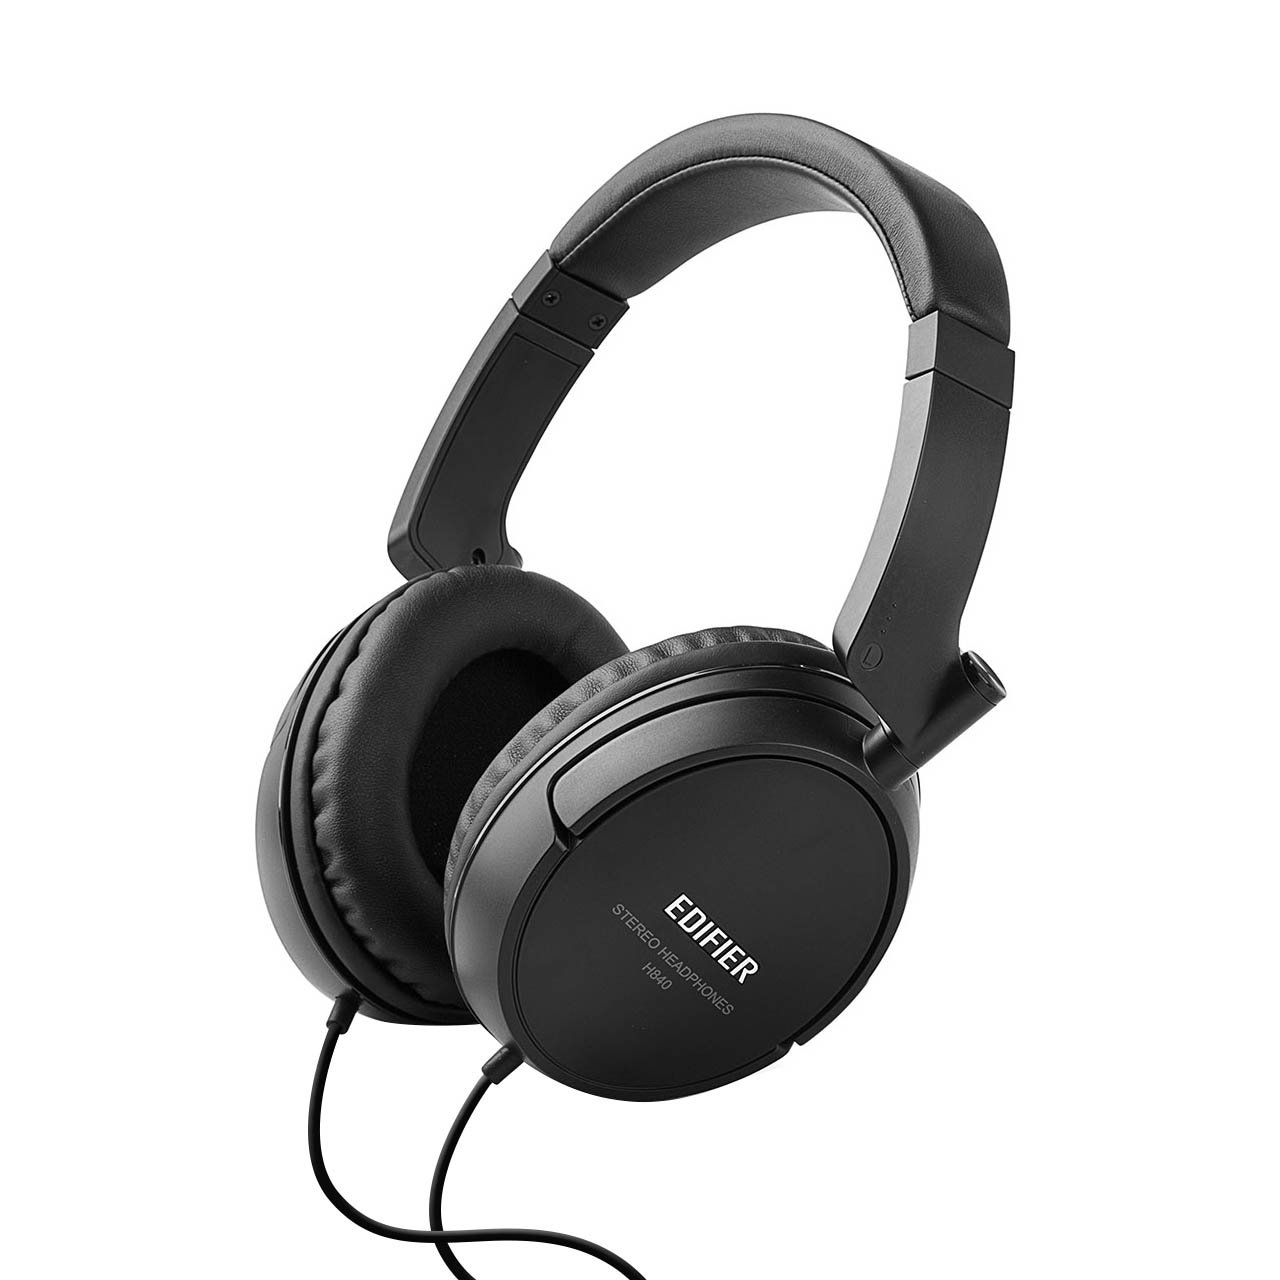 Edifier H840 Audiophile Over-the-ear Headphones - Hi-Fi Over-Ear Noise-Isolating Audiophile Closed Monitor Stereo Headphone - Black by Edifier